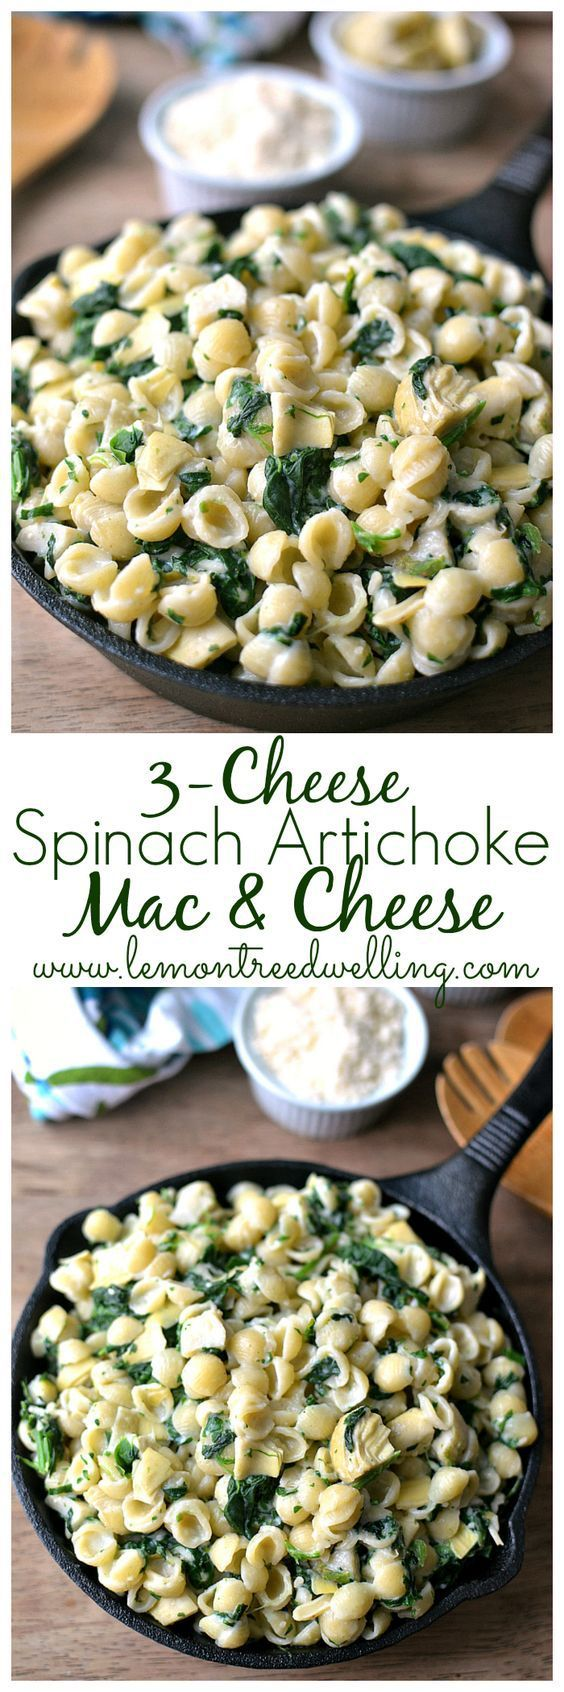 Savory yumminess!! (is that even a word? – it is now!)  2 boxes Horizon Organic Pasta Shells & White Cheddar Cheese 5 oz. chopped frozen spinach, thawed 1 c. canned artichoke hearts…